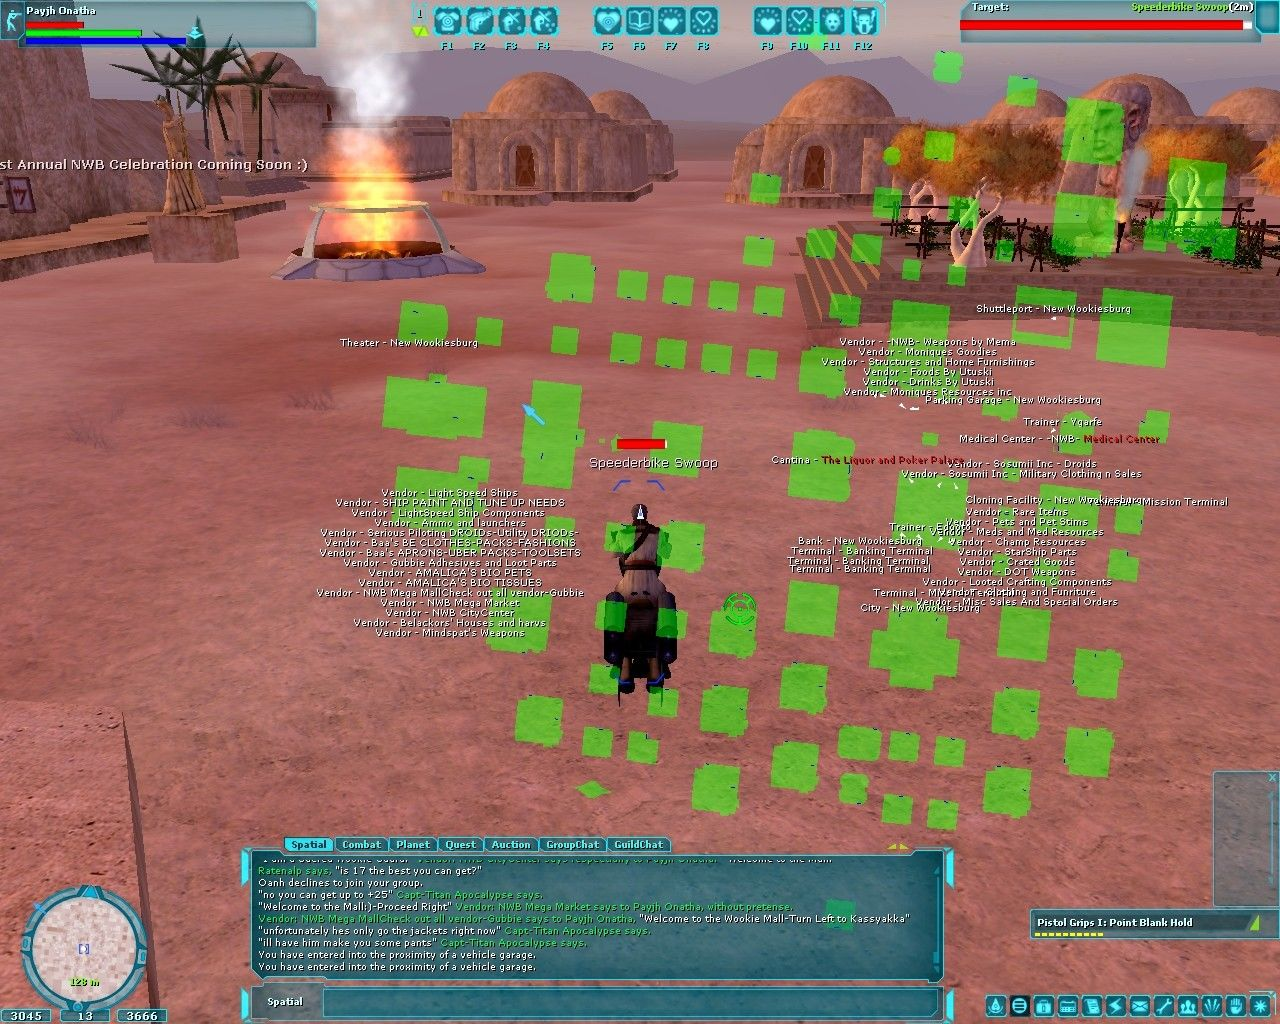 Star Wars: Galaxies - An Empire Divided Windows Pre-CU New Wookiesburg, Lok on the Bria Server. All the buildings are player placed and owned.